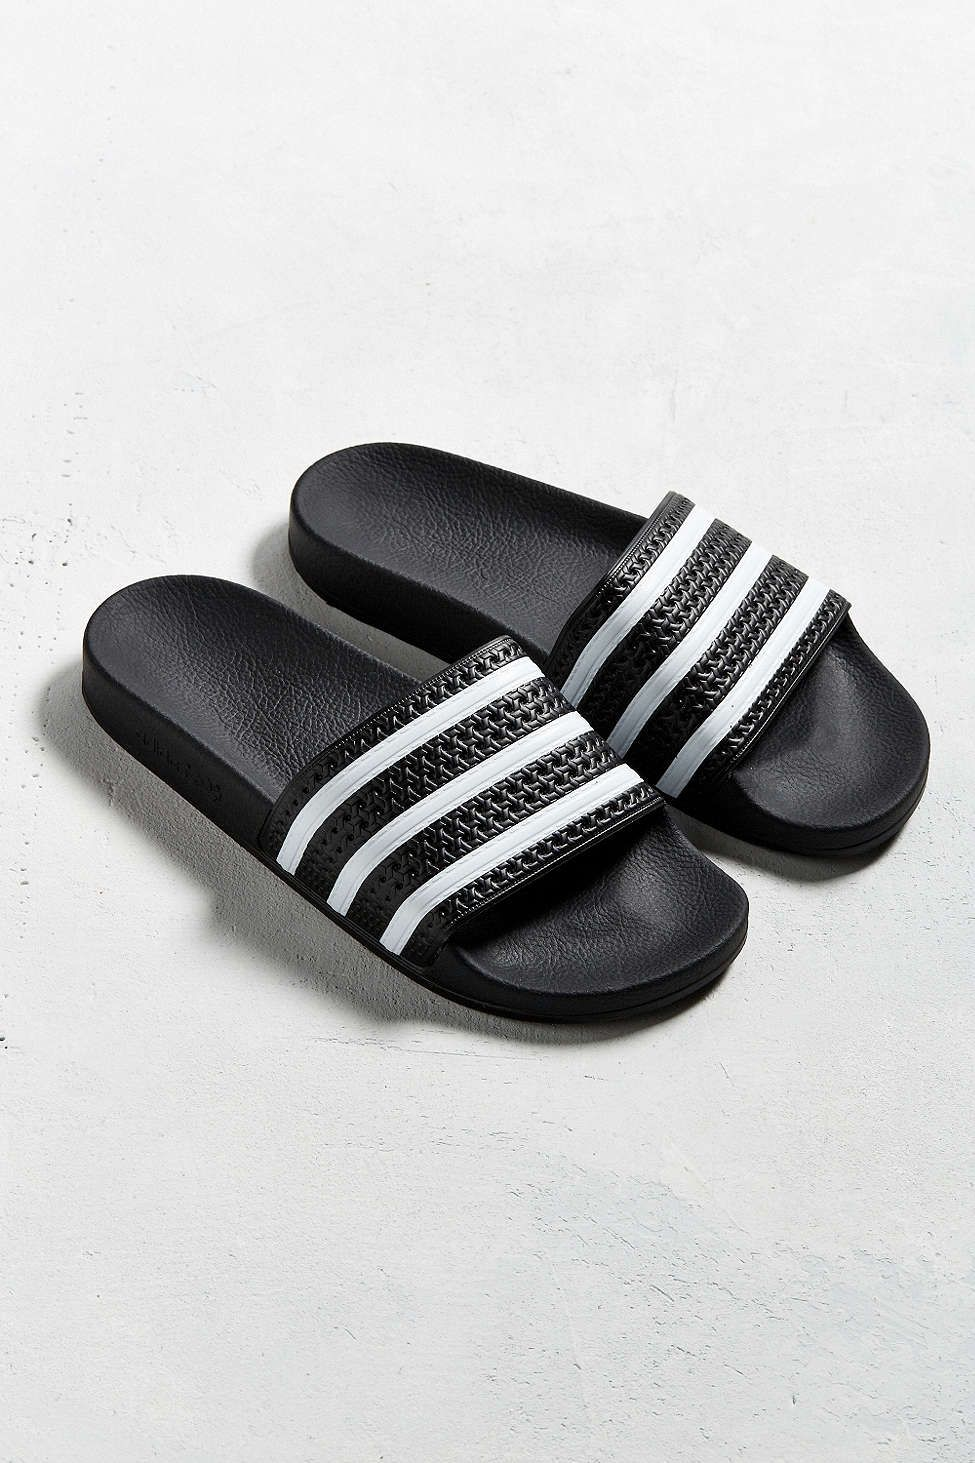 1e39a59336abc1 adidas Originals Adilette Pool Slide Sandal